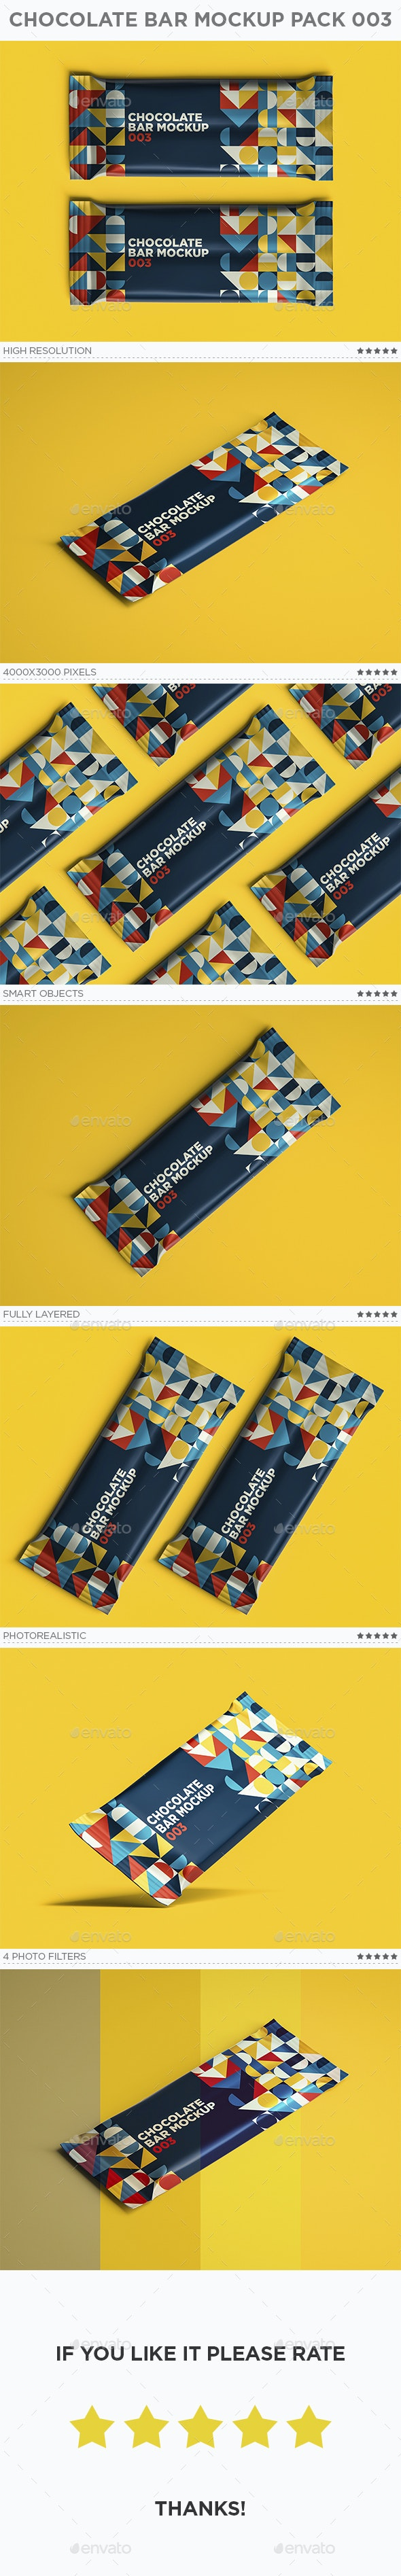 Chocolate Bar Mockup Pack 003 - Food and Drink Packaging